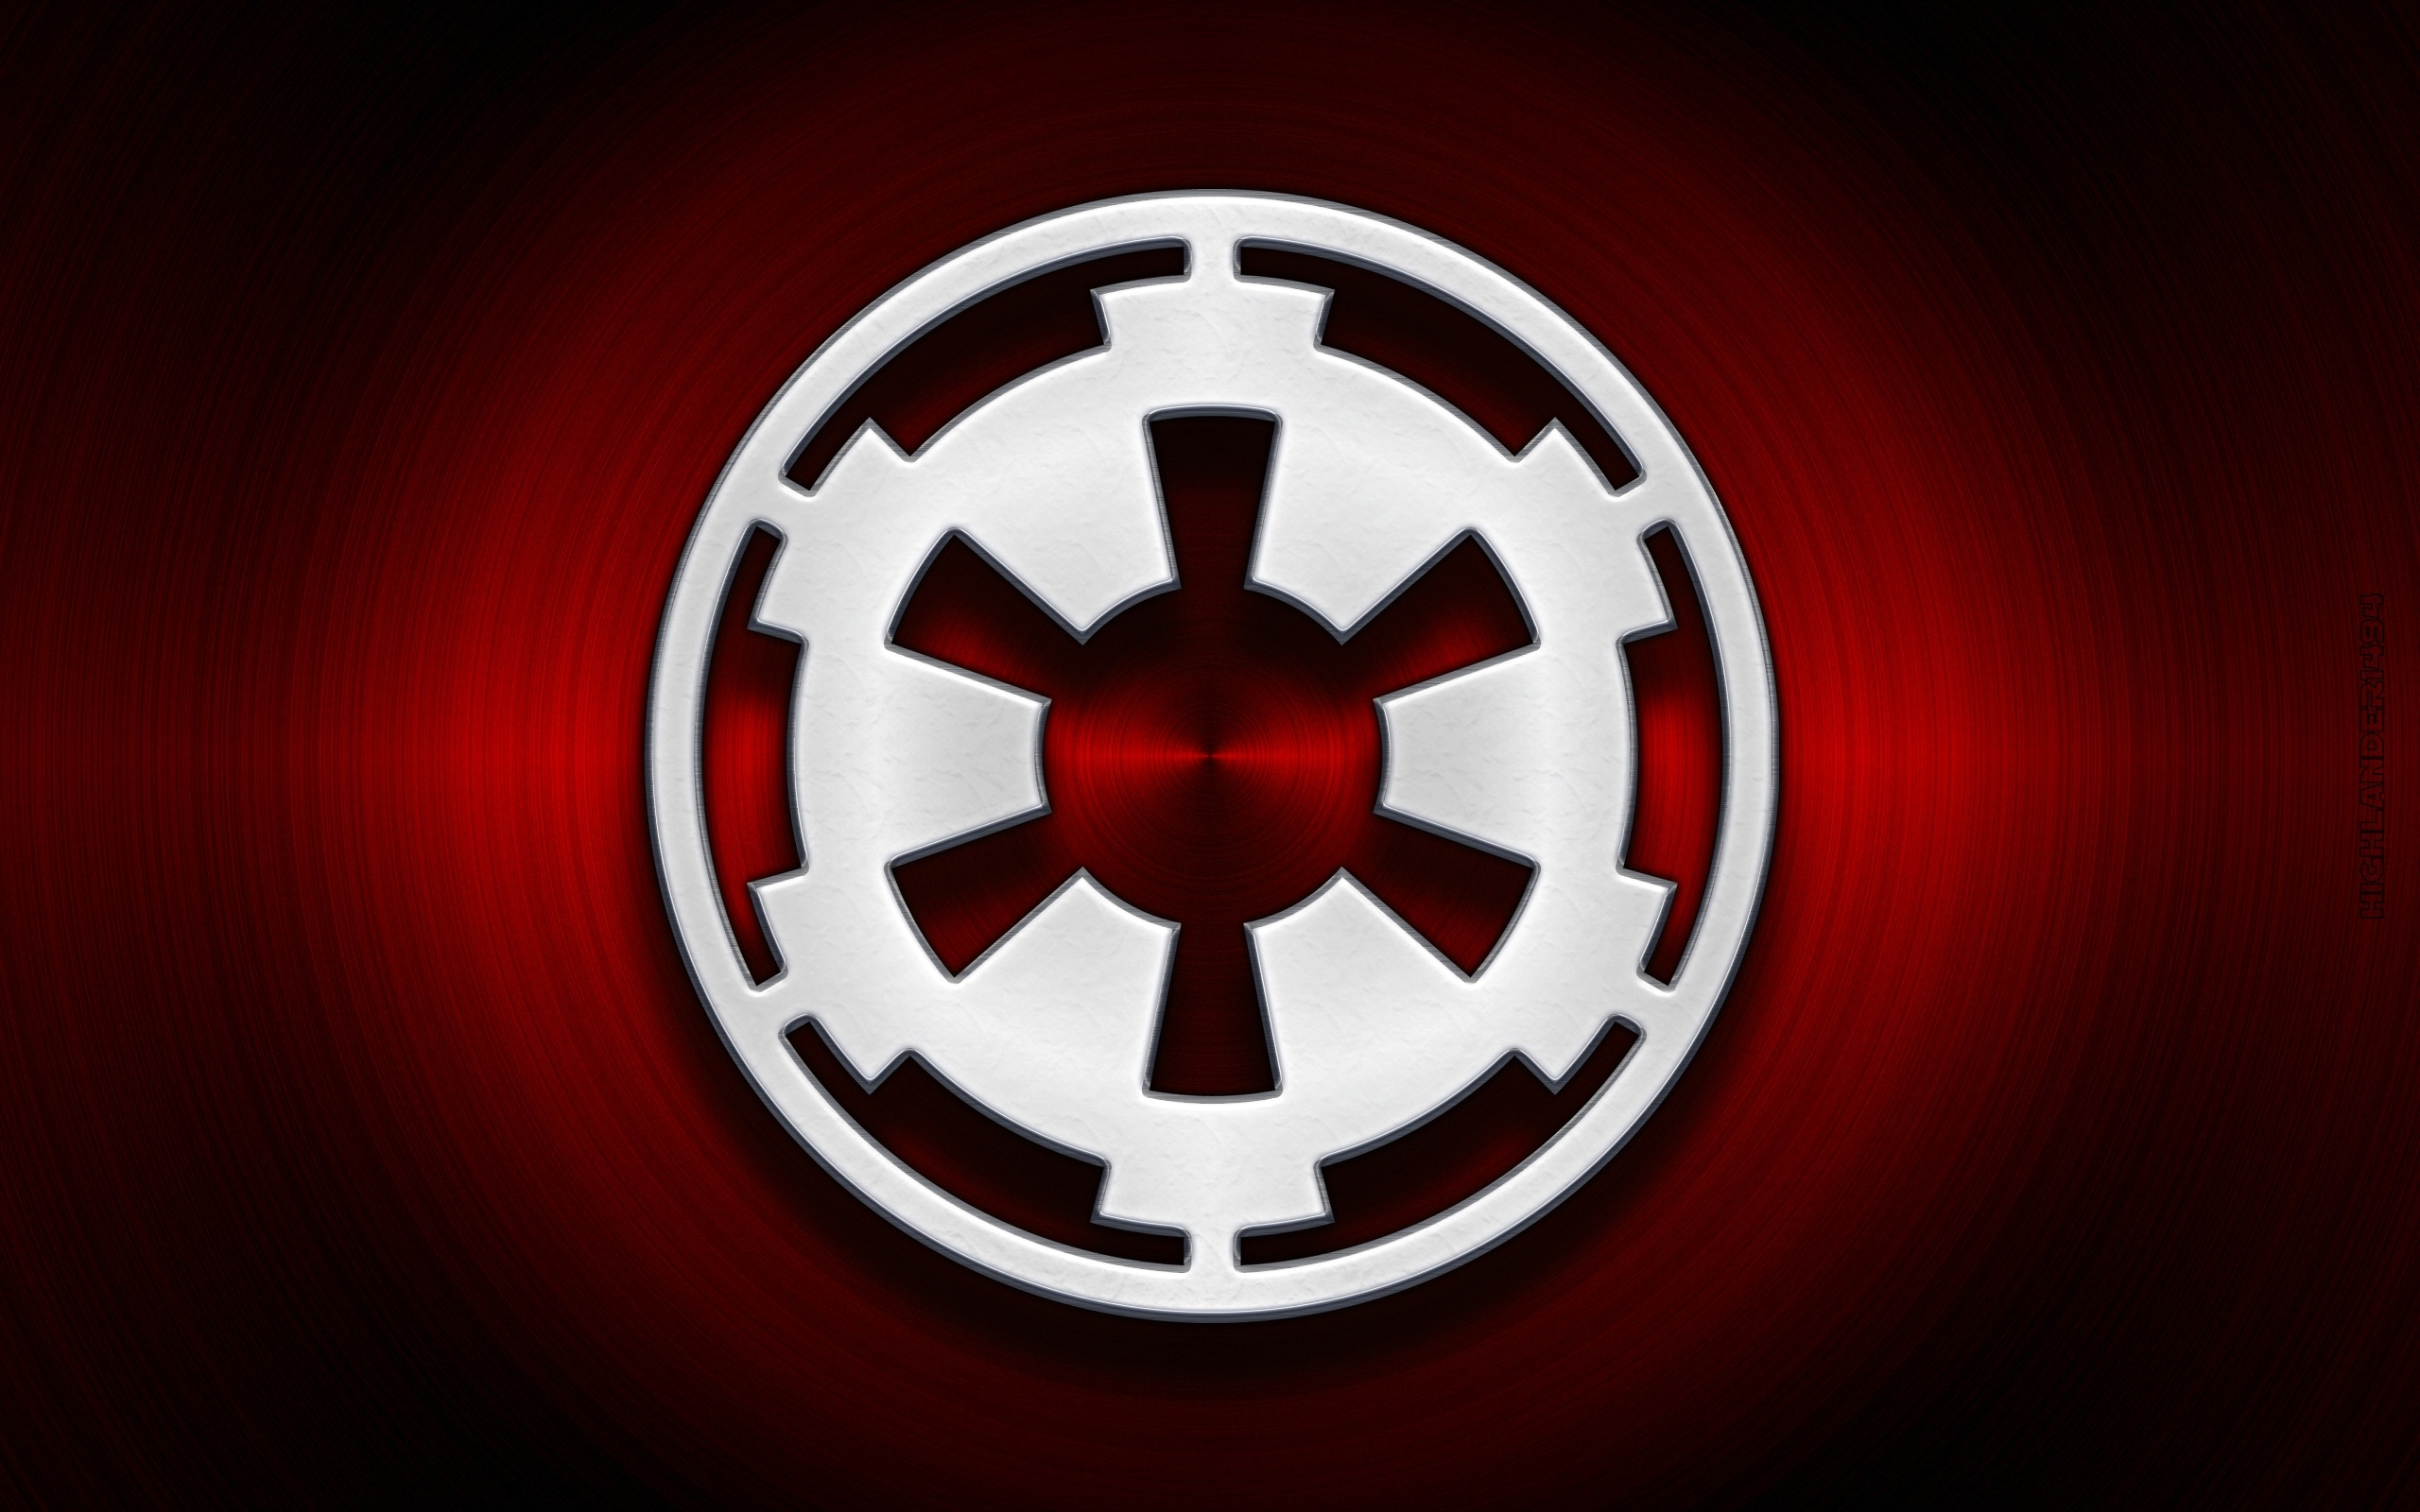 Star Wars Empire Logo Wallpaper - WallpaperSafari